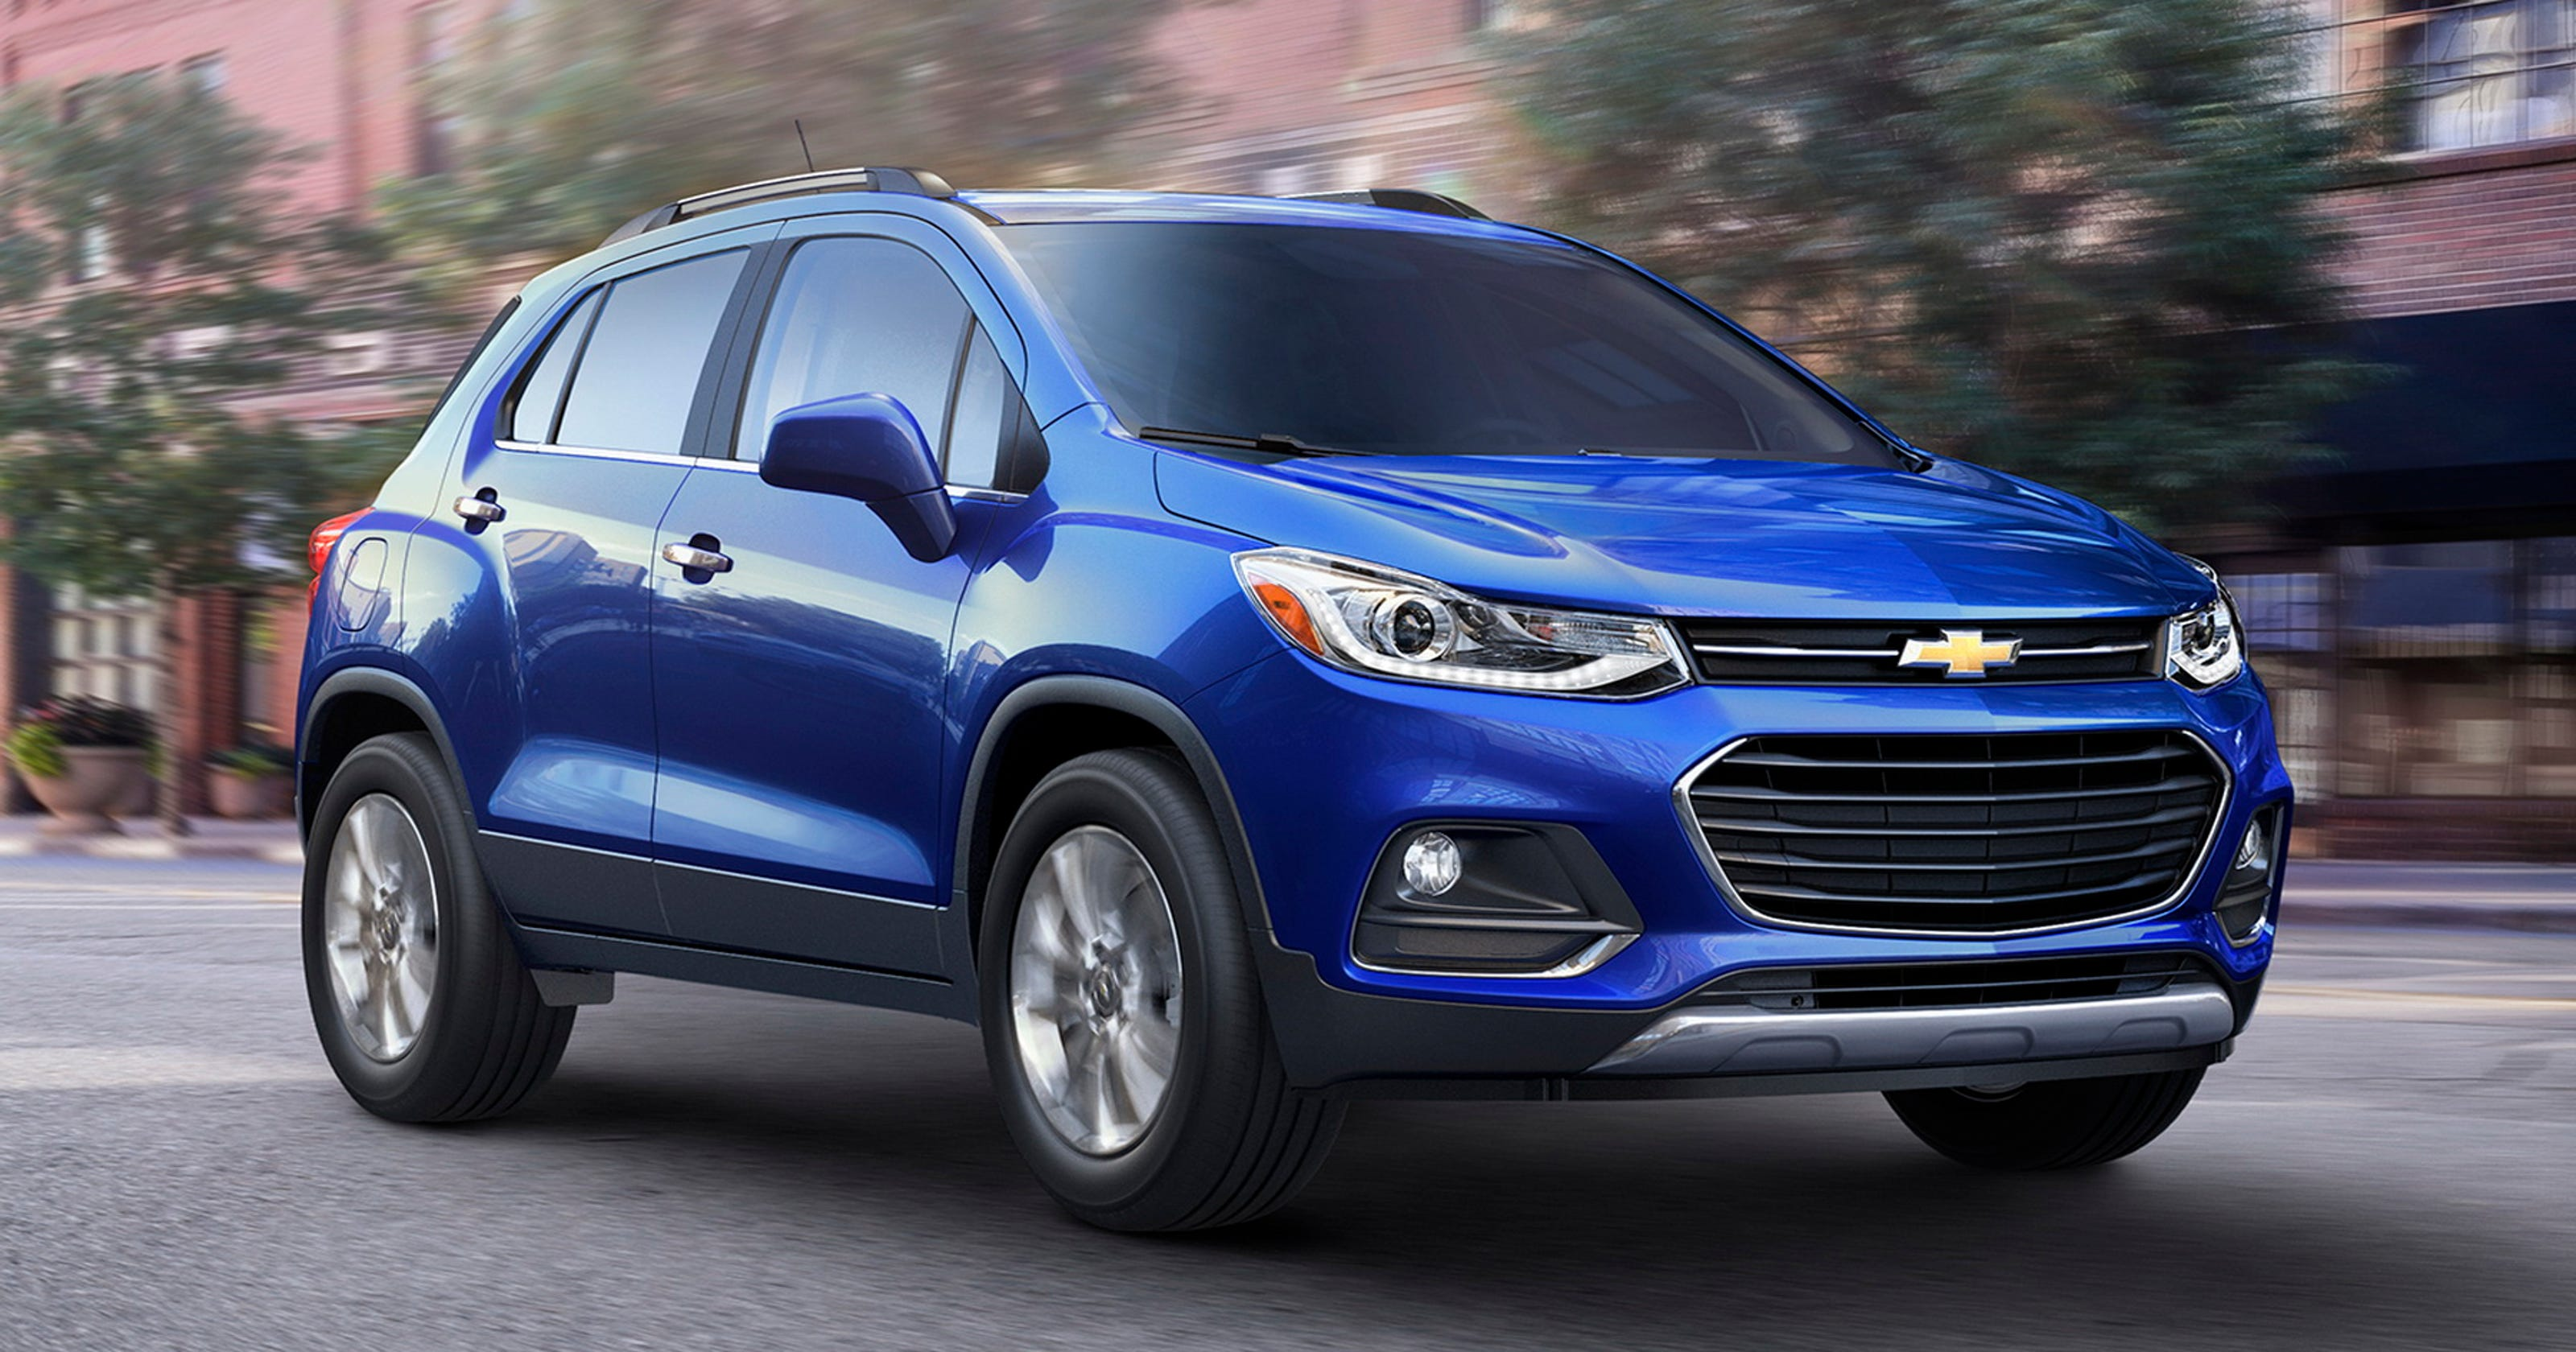 Auto review: 2017 Chevrolet Trax crossover is city smart